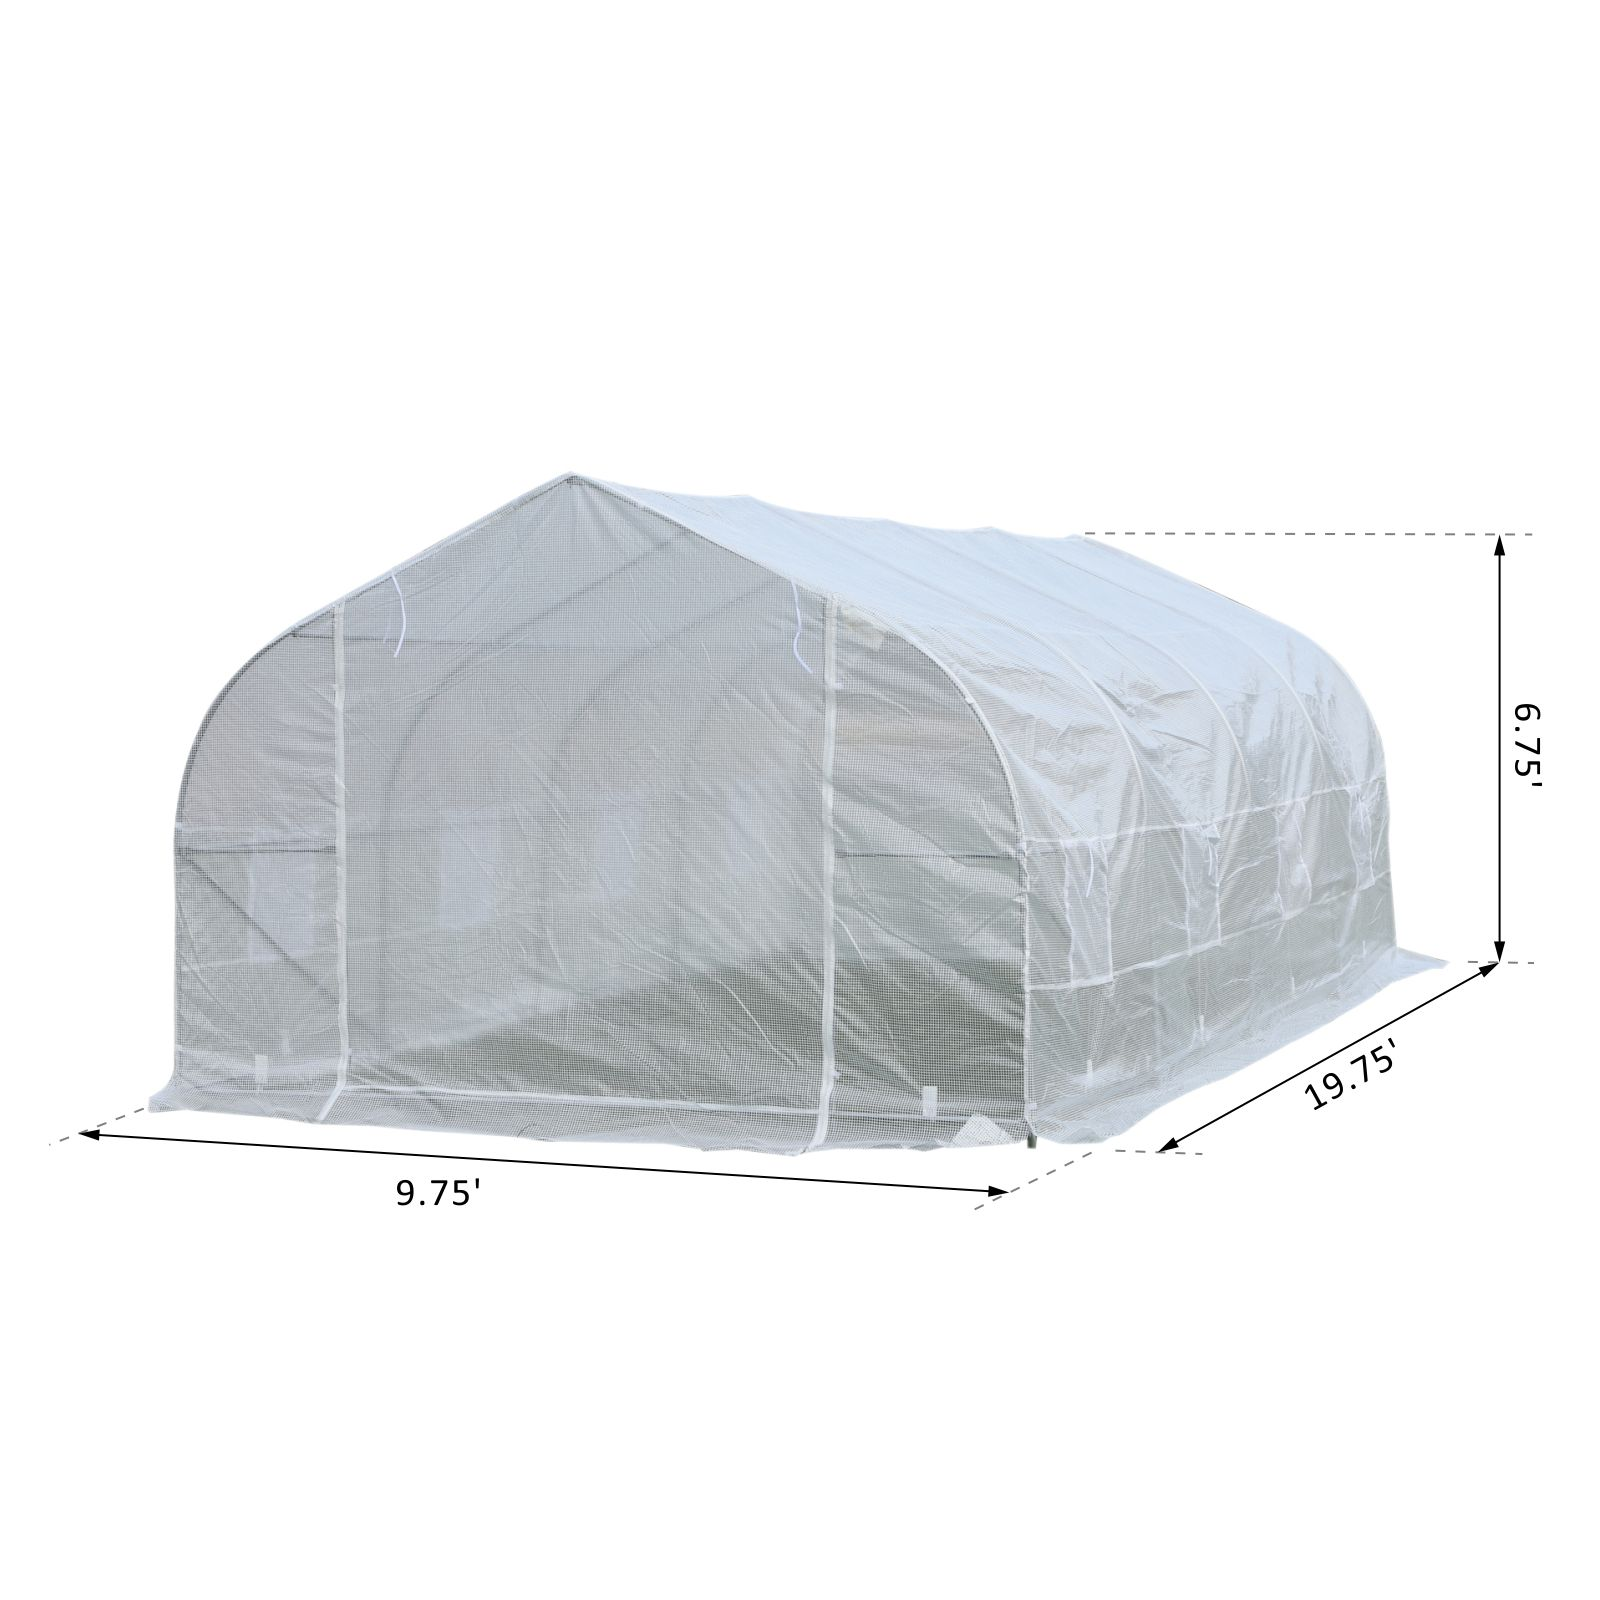 Outsunny-20x10x7ft-Walk-in-Outdoor-Tunnel-Greenhouse-Portable-Backyard-Plant thumbnail 13